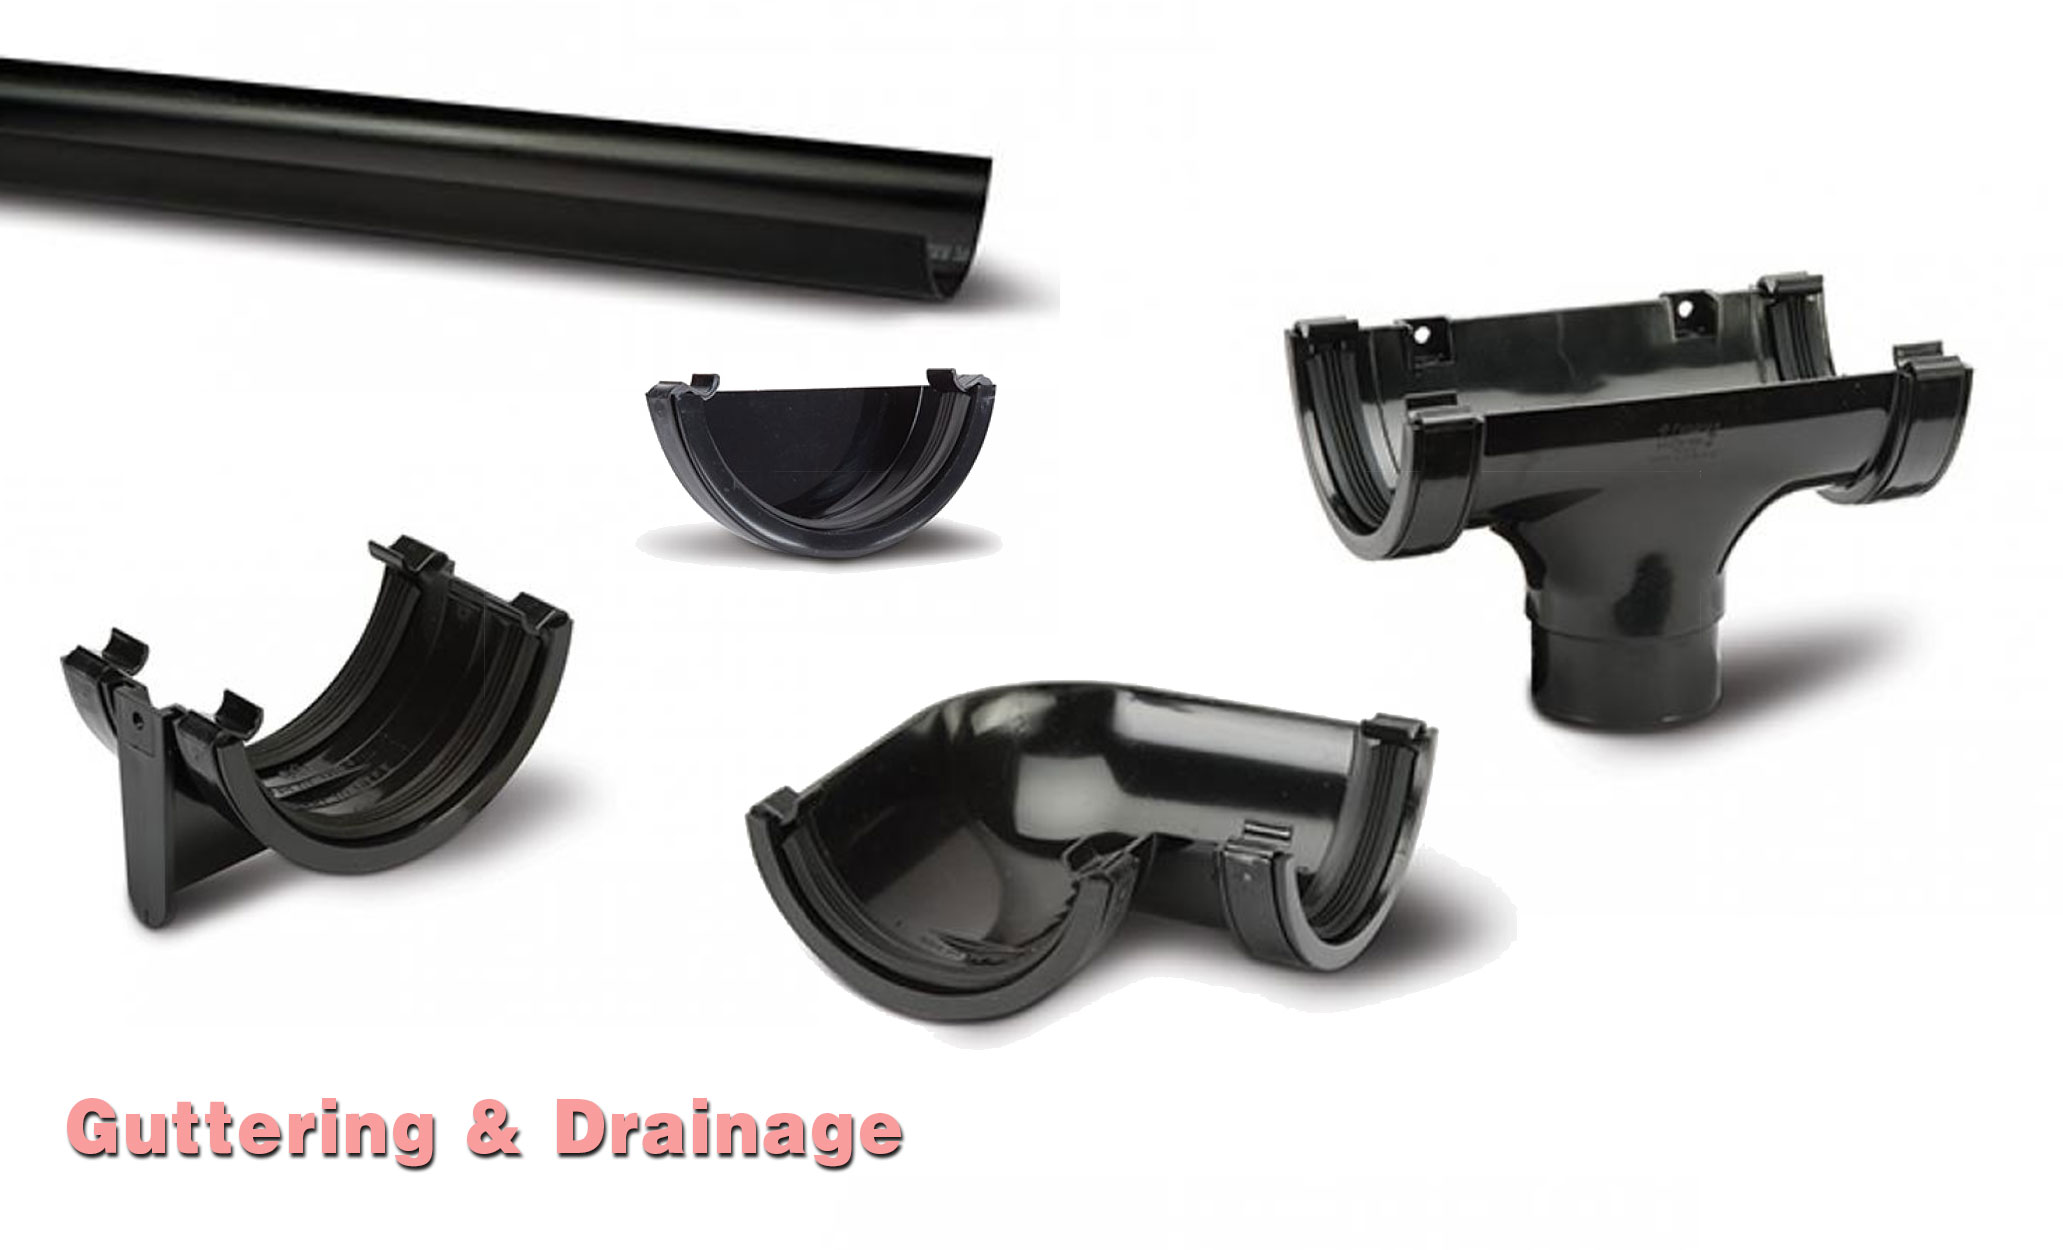 Guttering & Drainage